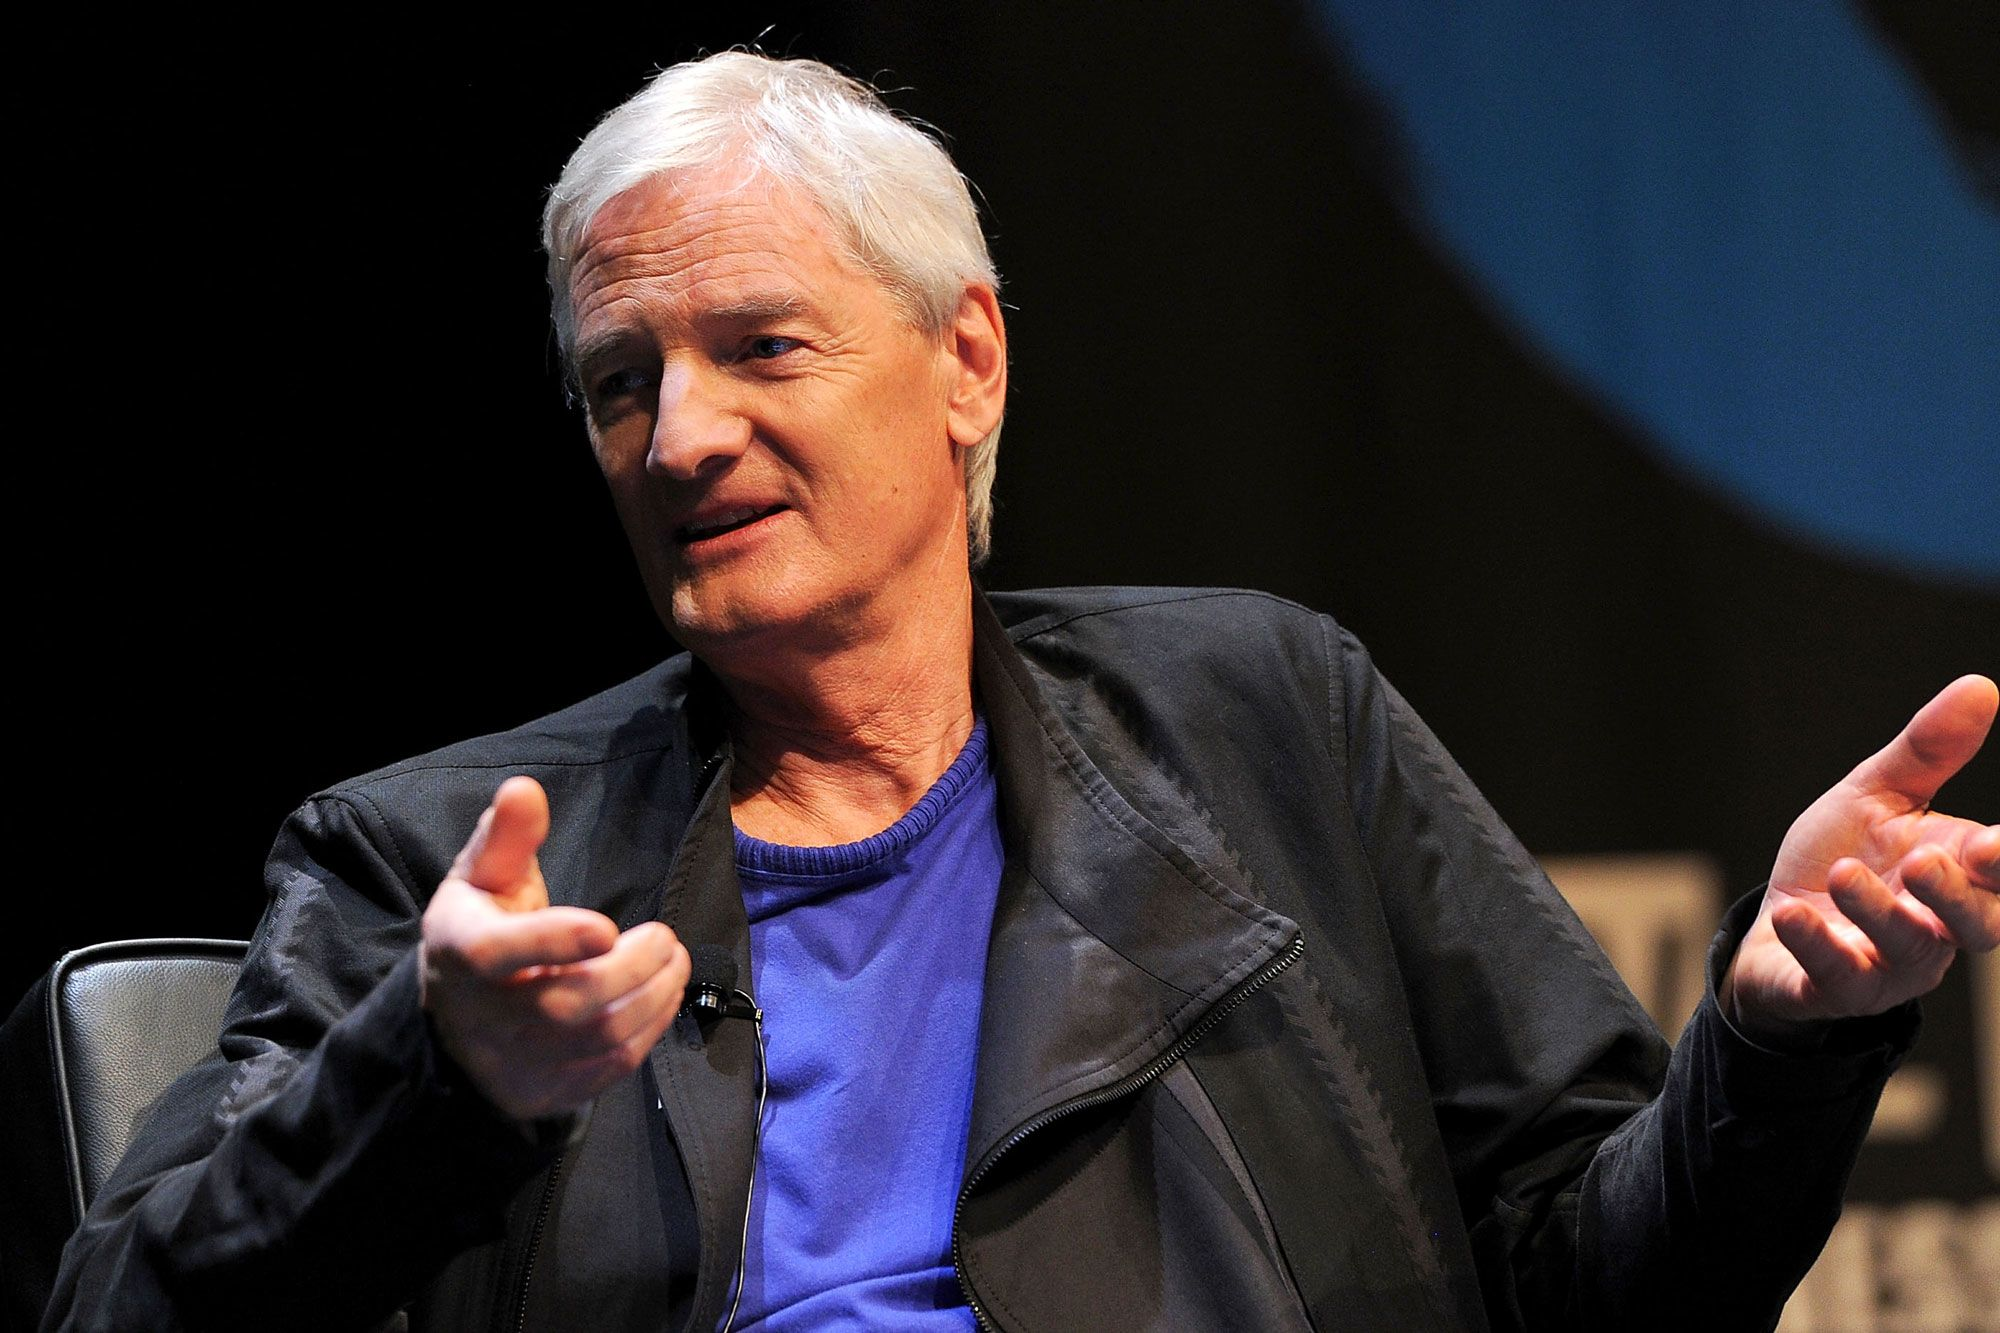 Vacuum-maker Dyson releases patents for new EV line to debut in 2021